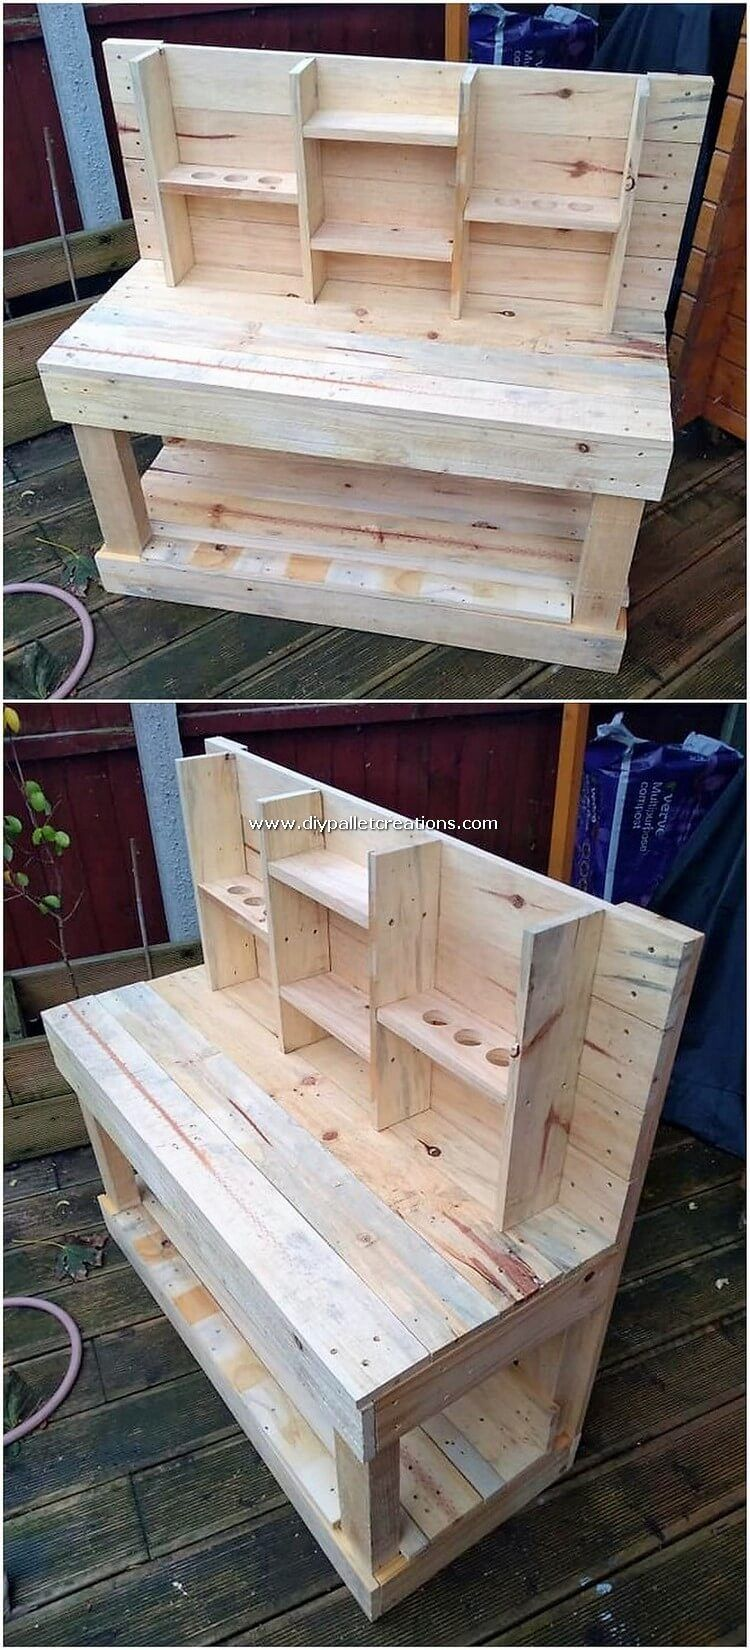 Superior Wood Shipping Pallet Diy Ideas Pallet Diy Diy Pallet